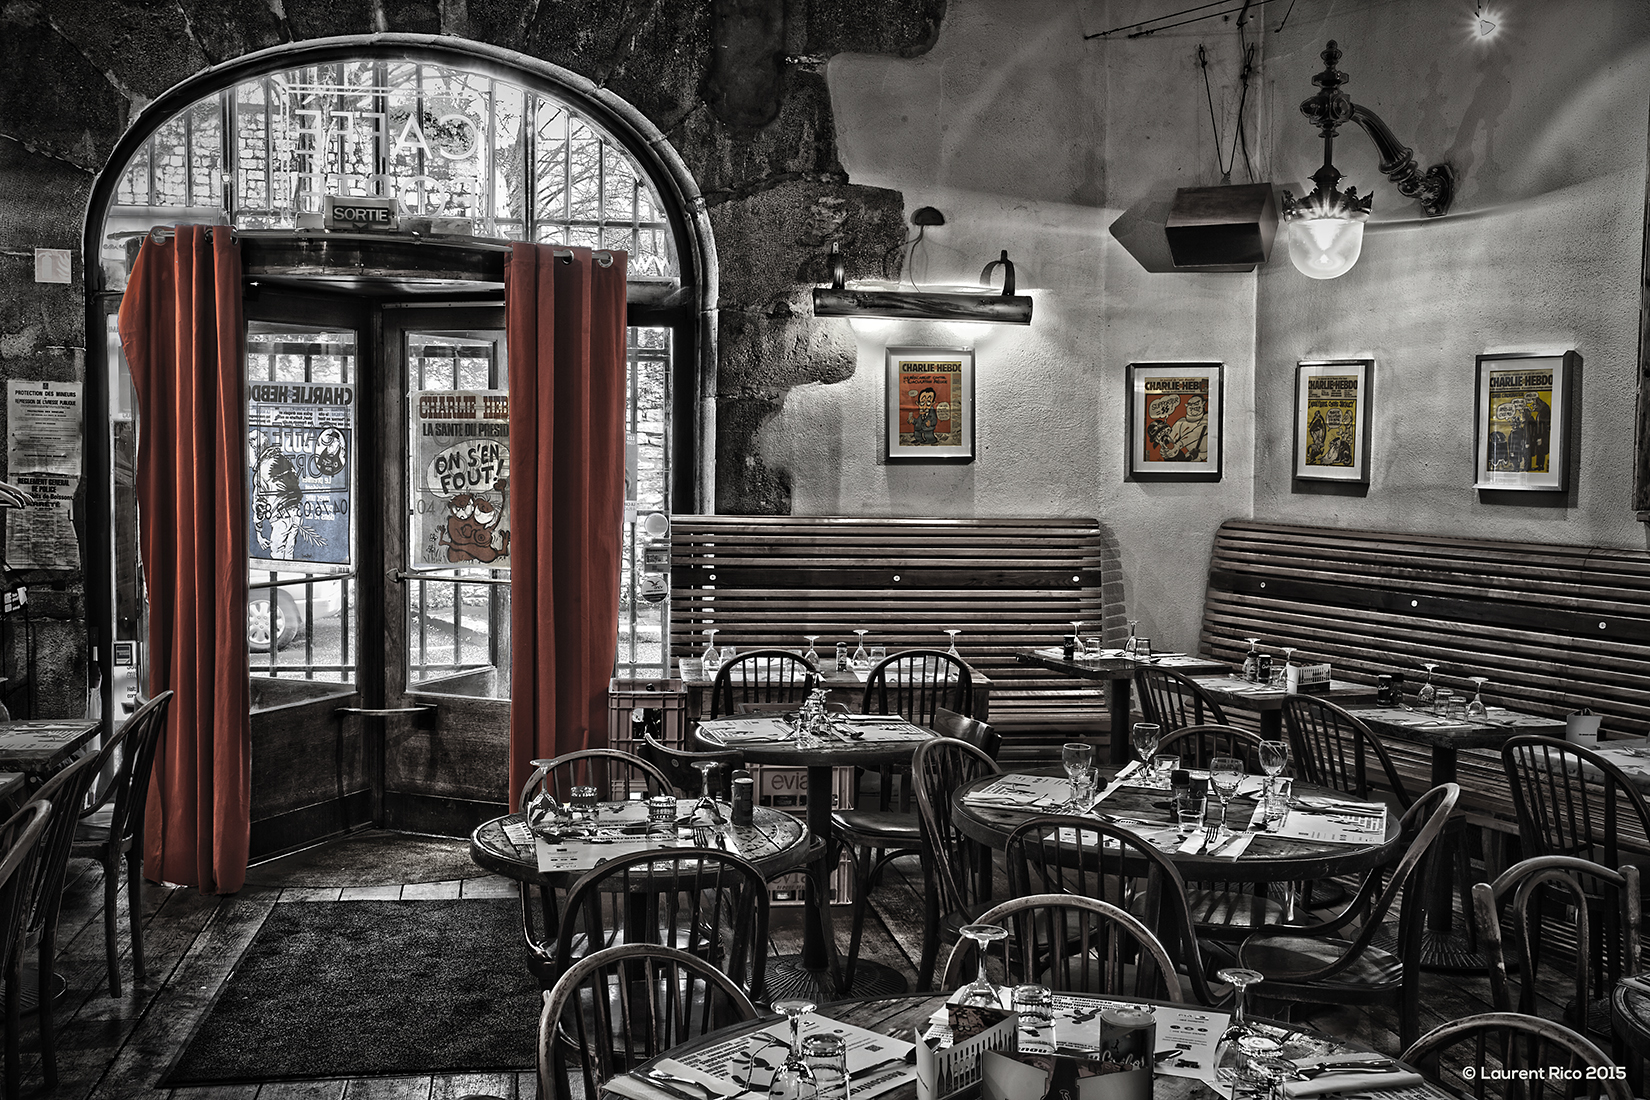 laurent rico-photographe-videaste-grenoble-isere-creations-realisations-hdr-caffe-architecture-interieur-